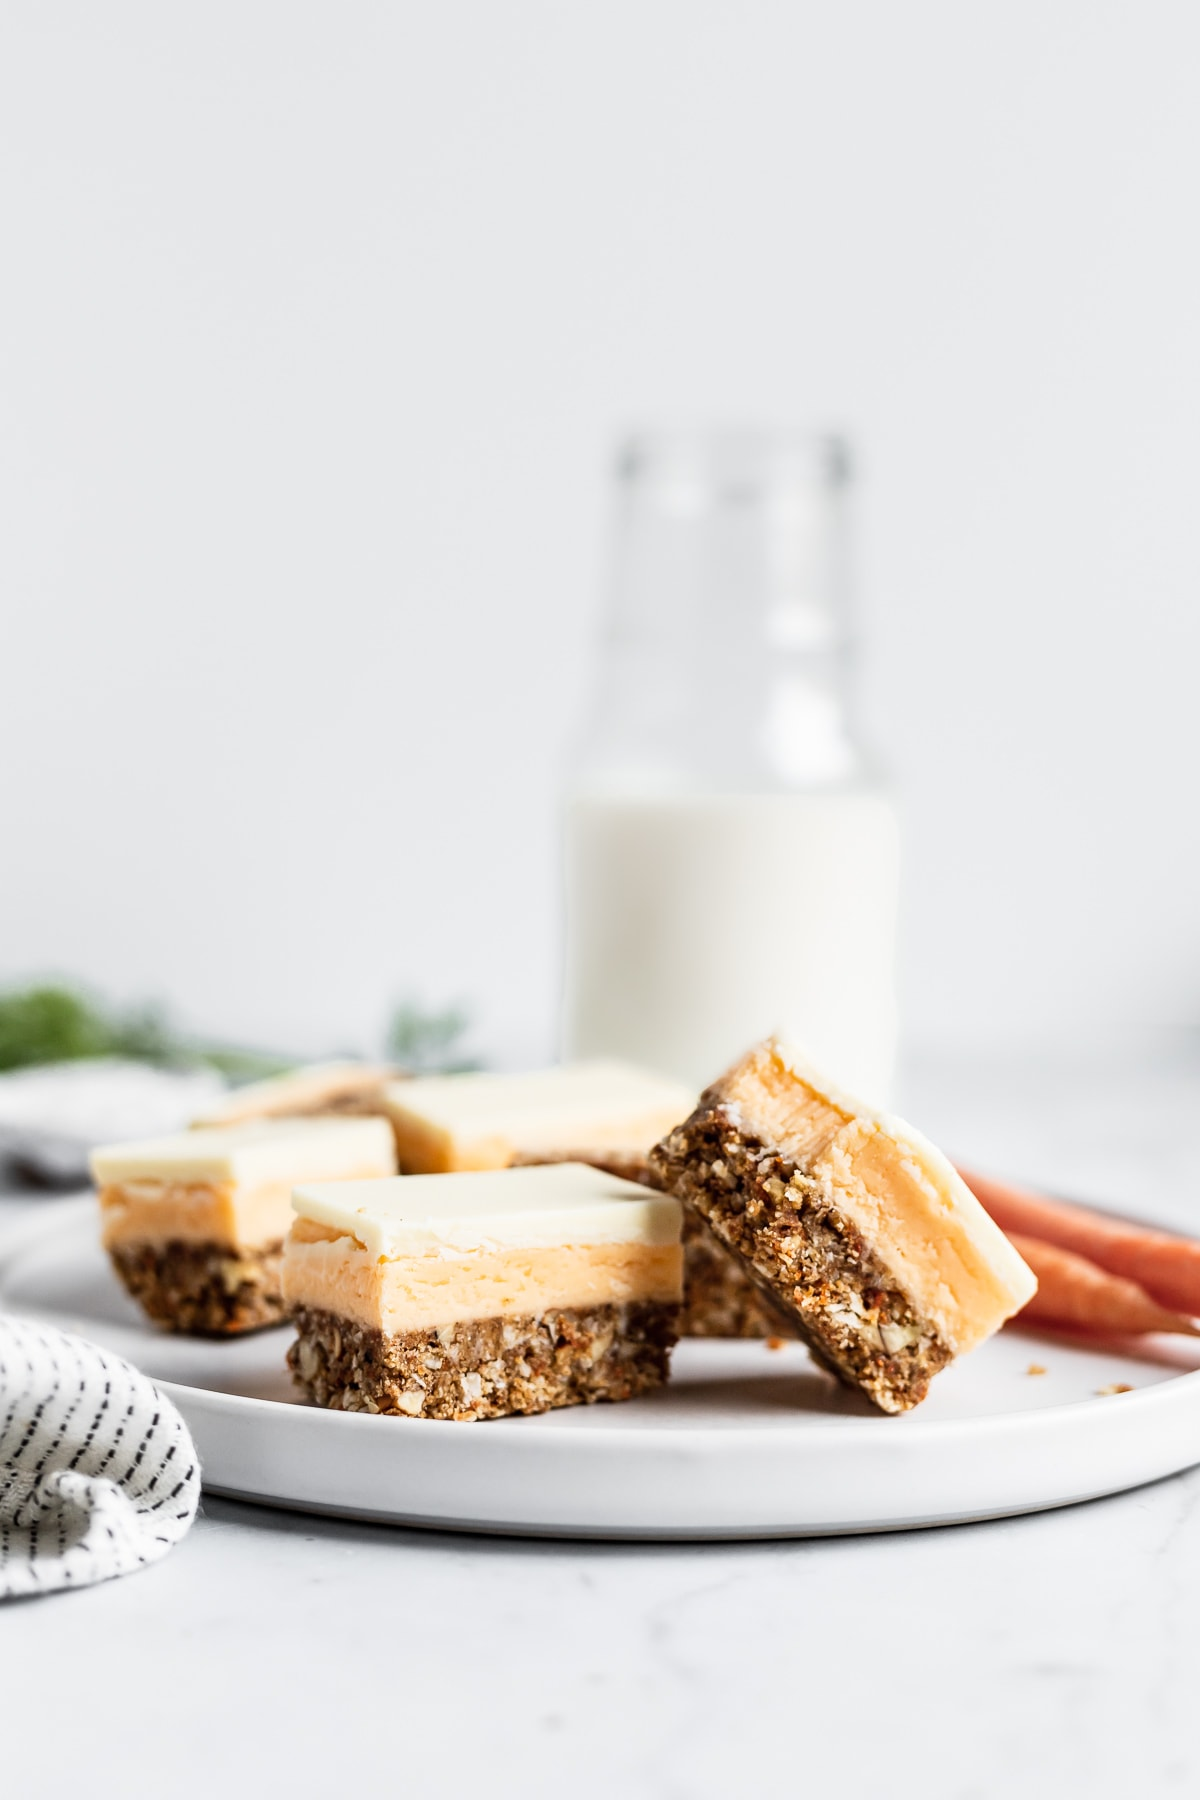 Sliced carrot cake bars on a white plate with a glass milk bottle in the background